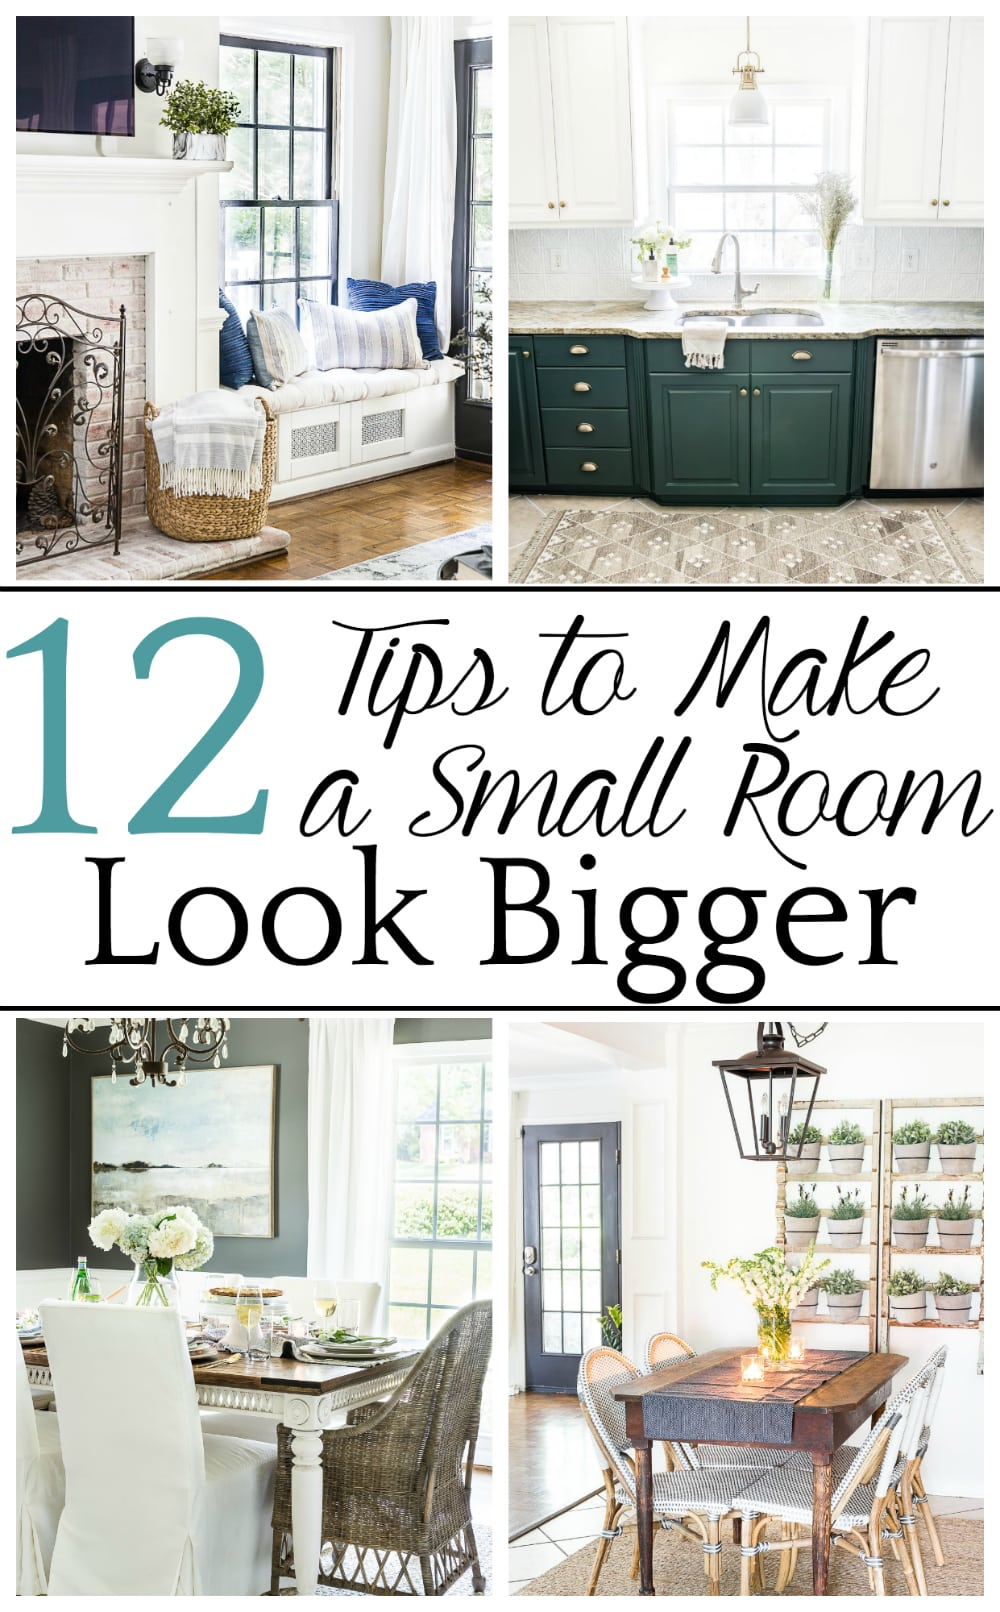 make living room spacious using simple and smart tricks home interior work 12 tips for decorating, furniture selecting, choosing paint colors, and  utilizing function to